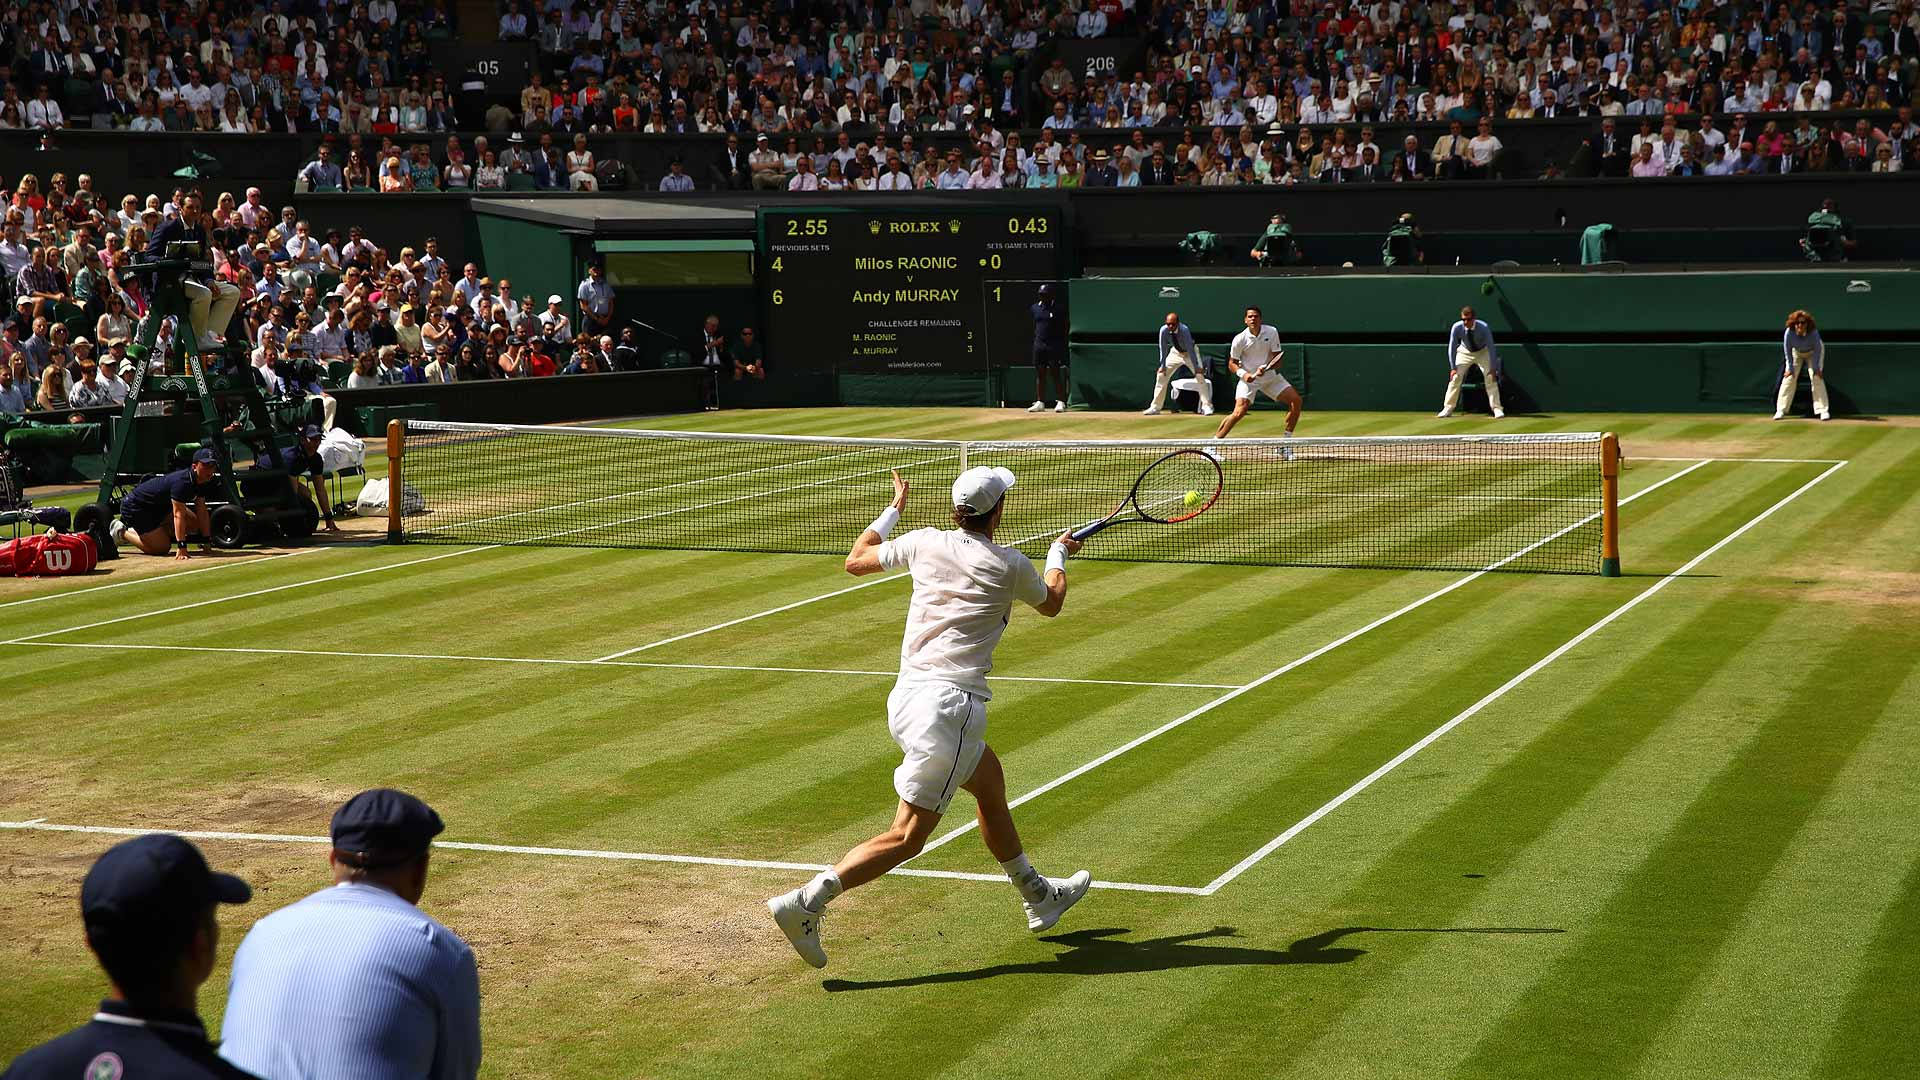 Wimbledon | All the action from the casino floor: news, views and more